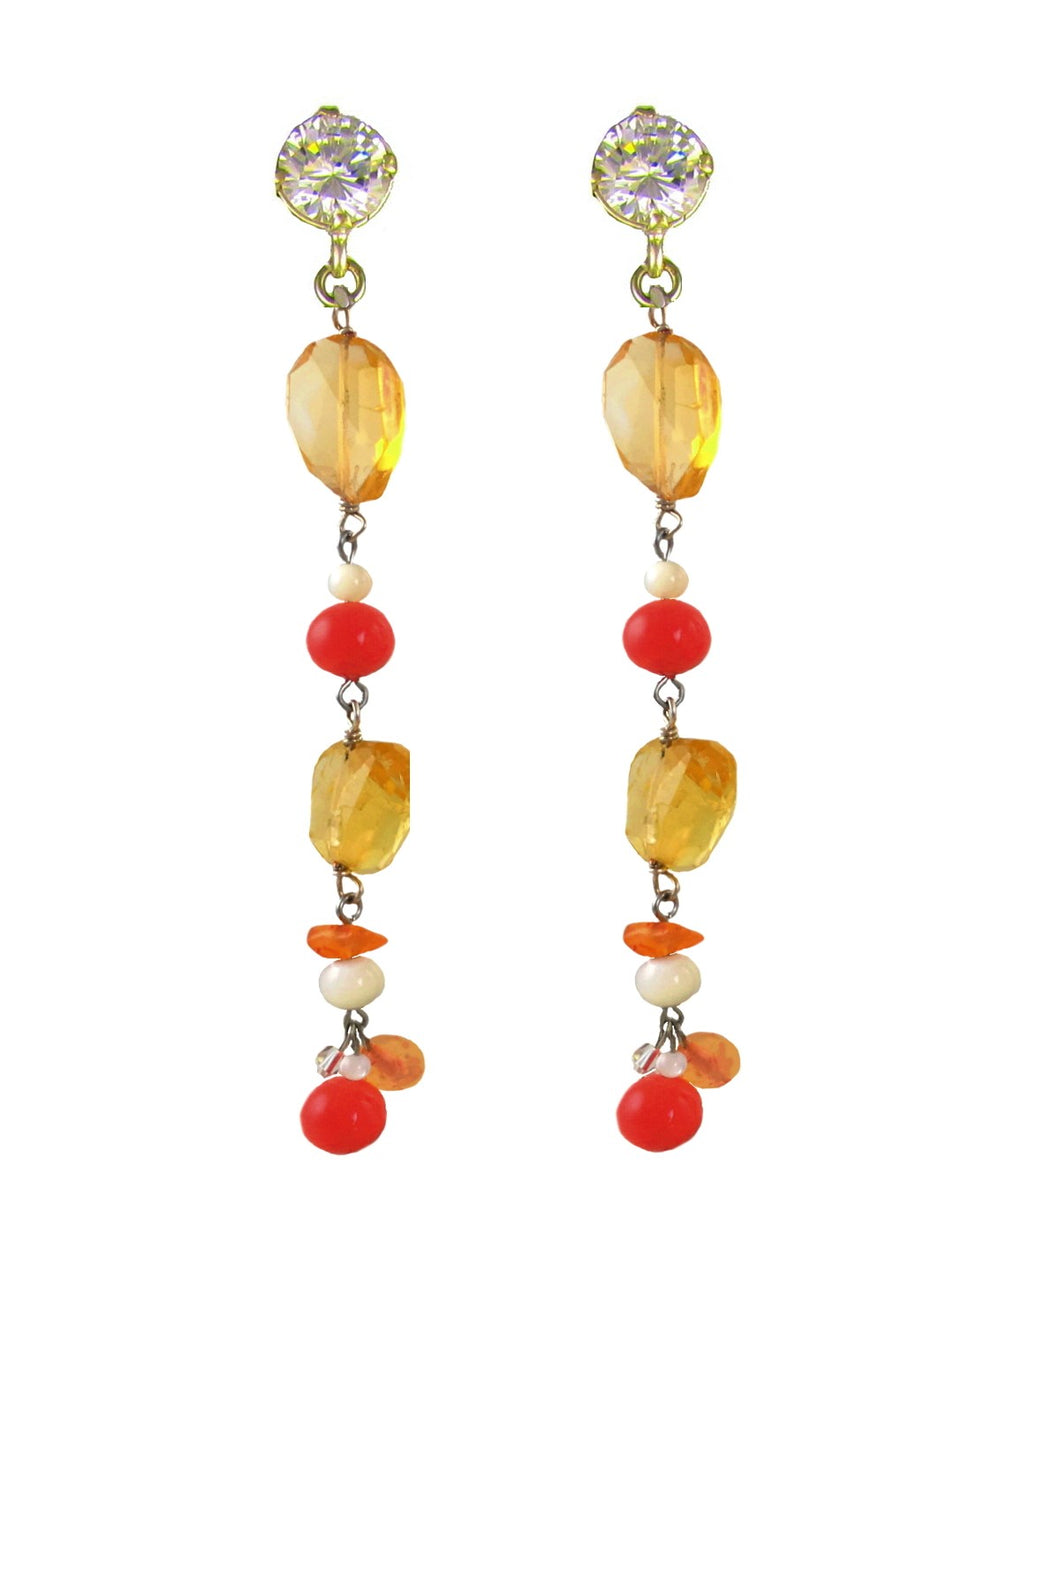 SALE - Citrine Diana Agate Earrings